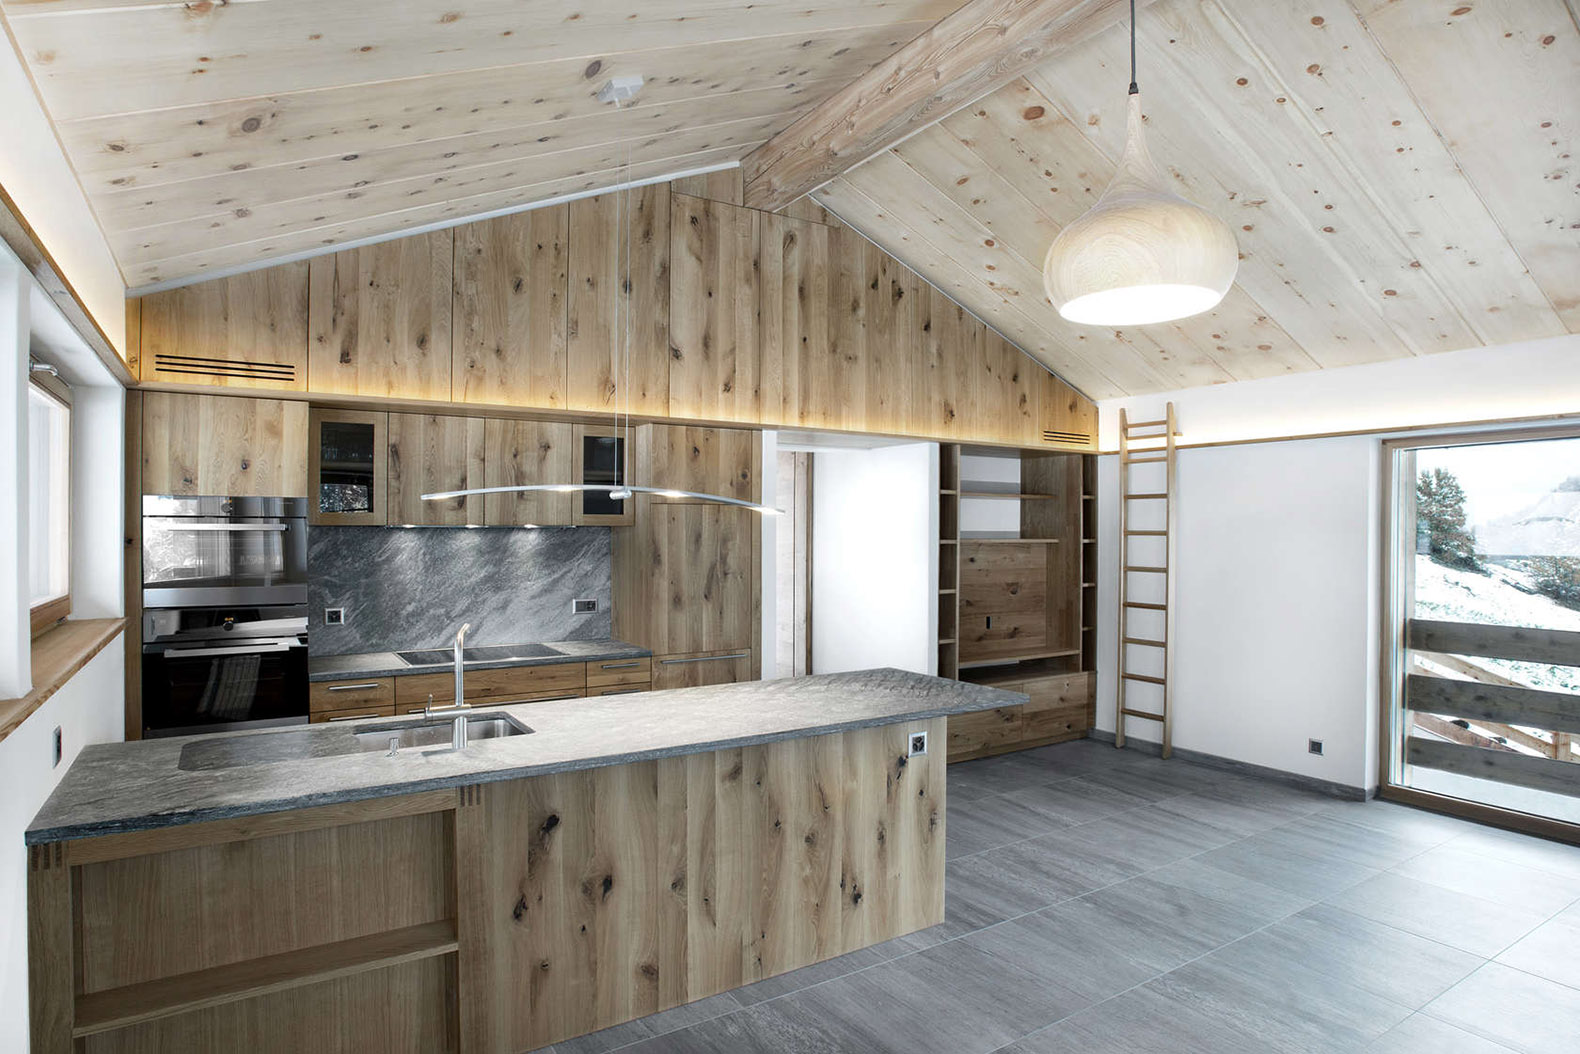 crusty old swiss barn transformed into a modern solar powered home larch barn barn renovation alp architecture sarl green renovation timber architecture